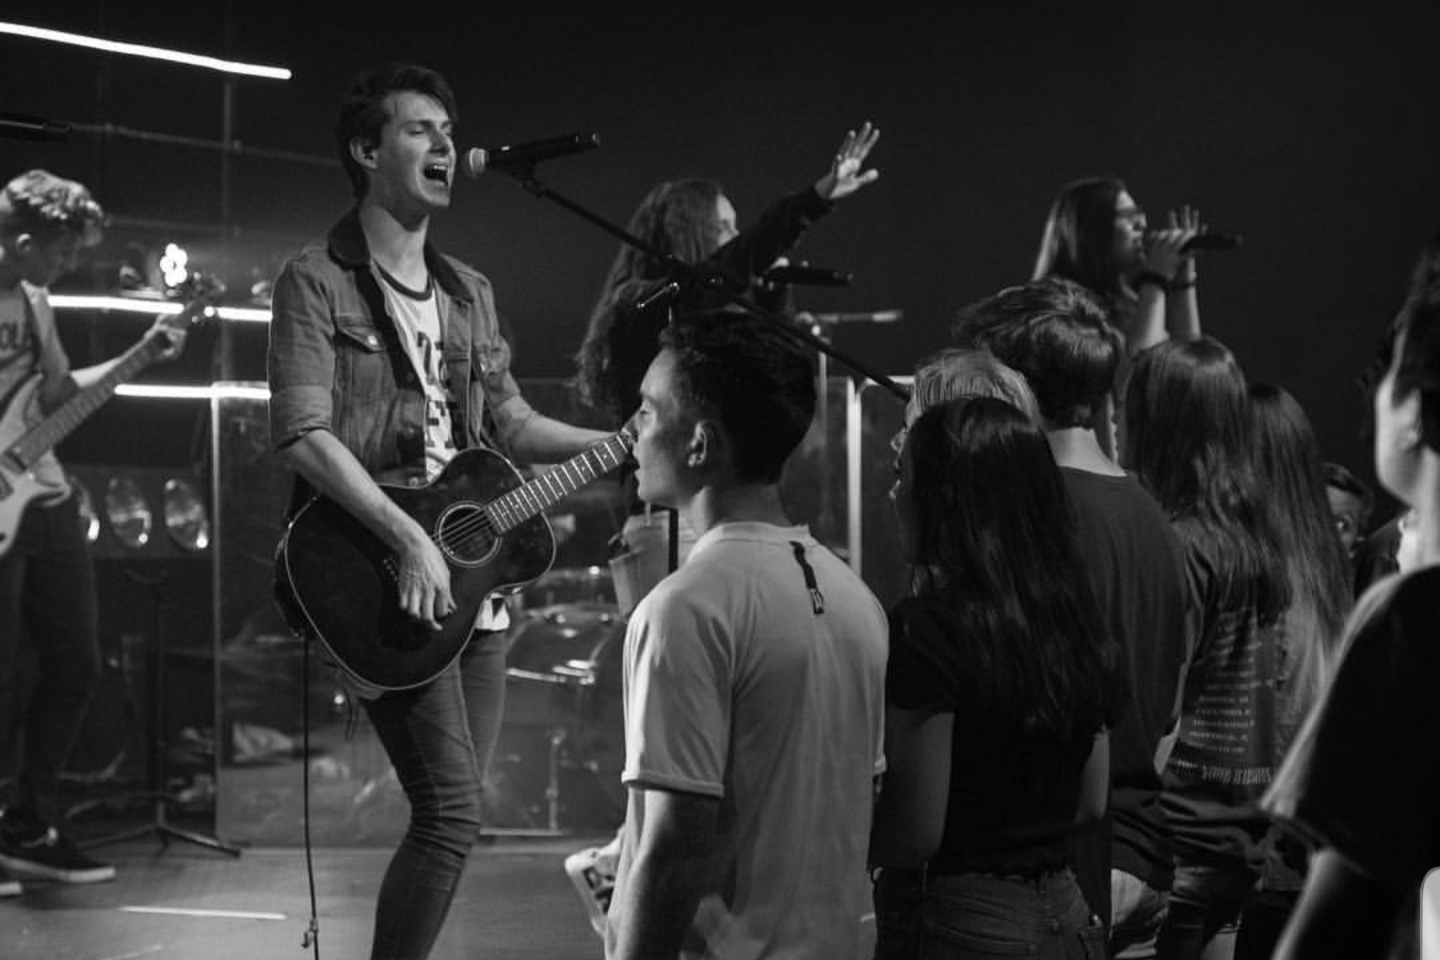 THE SOURCE - Sundays / 9:00 & 10:40 a.m. / Main Auditorium / We encourage our High School students to attend the Main Weekend Services!Wednesdays / 6:00-8:00 p.m. / The Venue (Room 304) / Worship, Teaching, Games!For more information, please email derrick.alvarez@clovishills.com or visit clovishillsyouth.com.